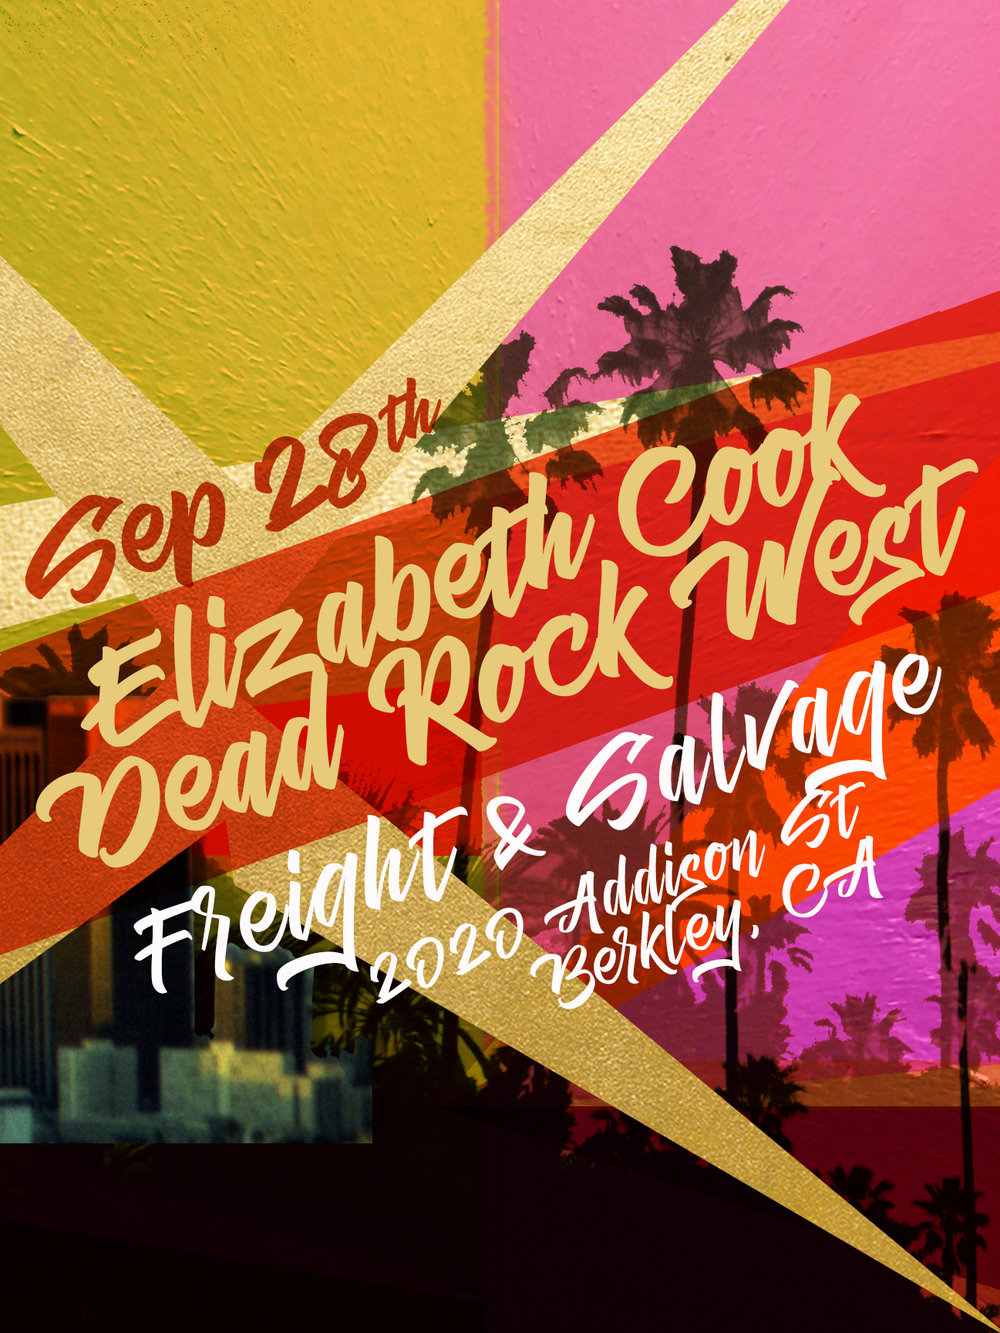 SEPTEMBER 28, 2017w/ SIRIUS RADIO OUTLAW DJELIZABETH COOK - Live at Freight & Salvage in Berkley, CA'MORE LOVE'!